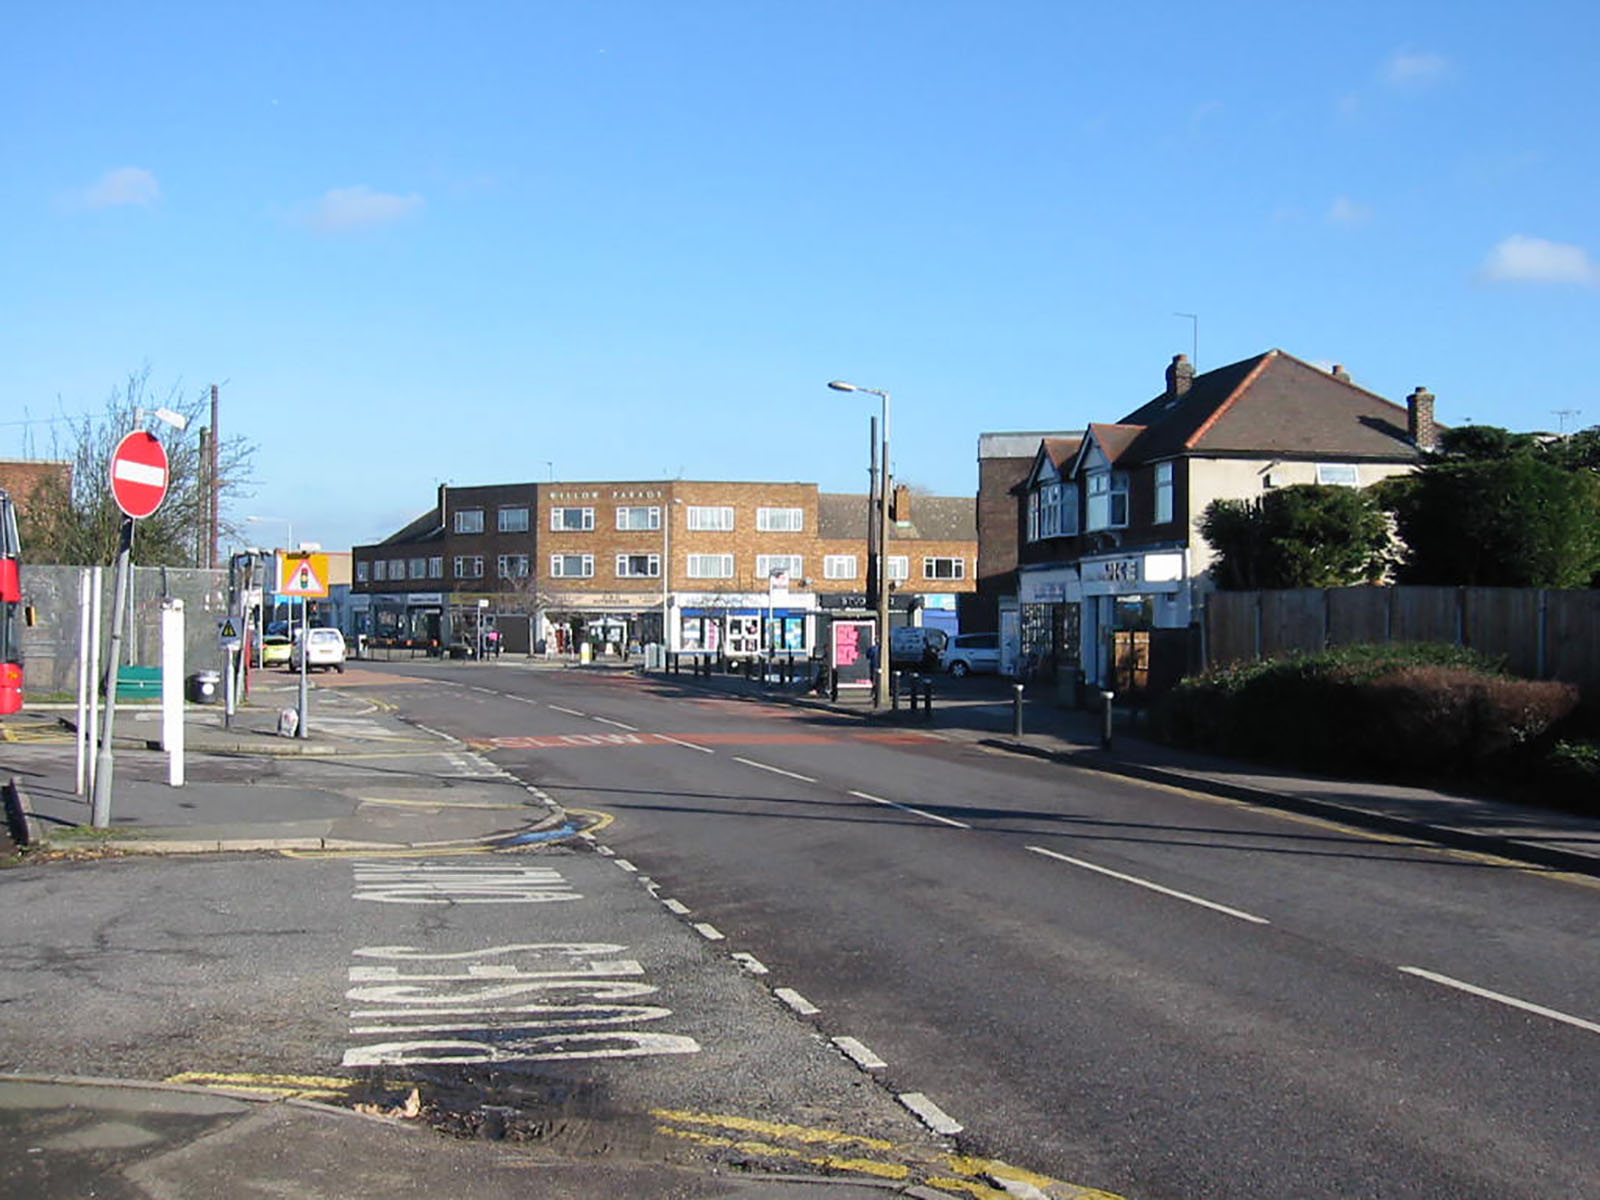 Willow Parade and shops on Front Lane, in Cranham, Havering.